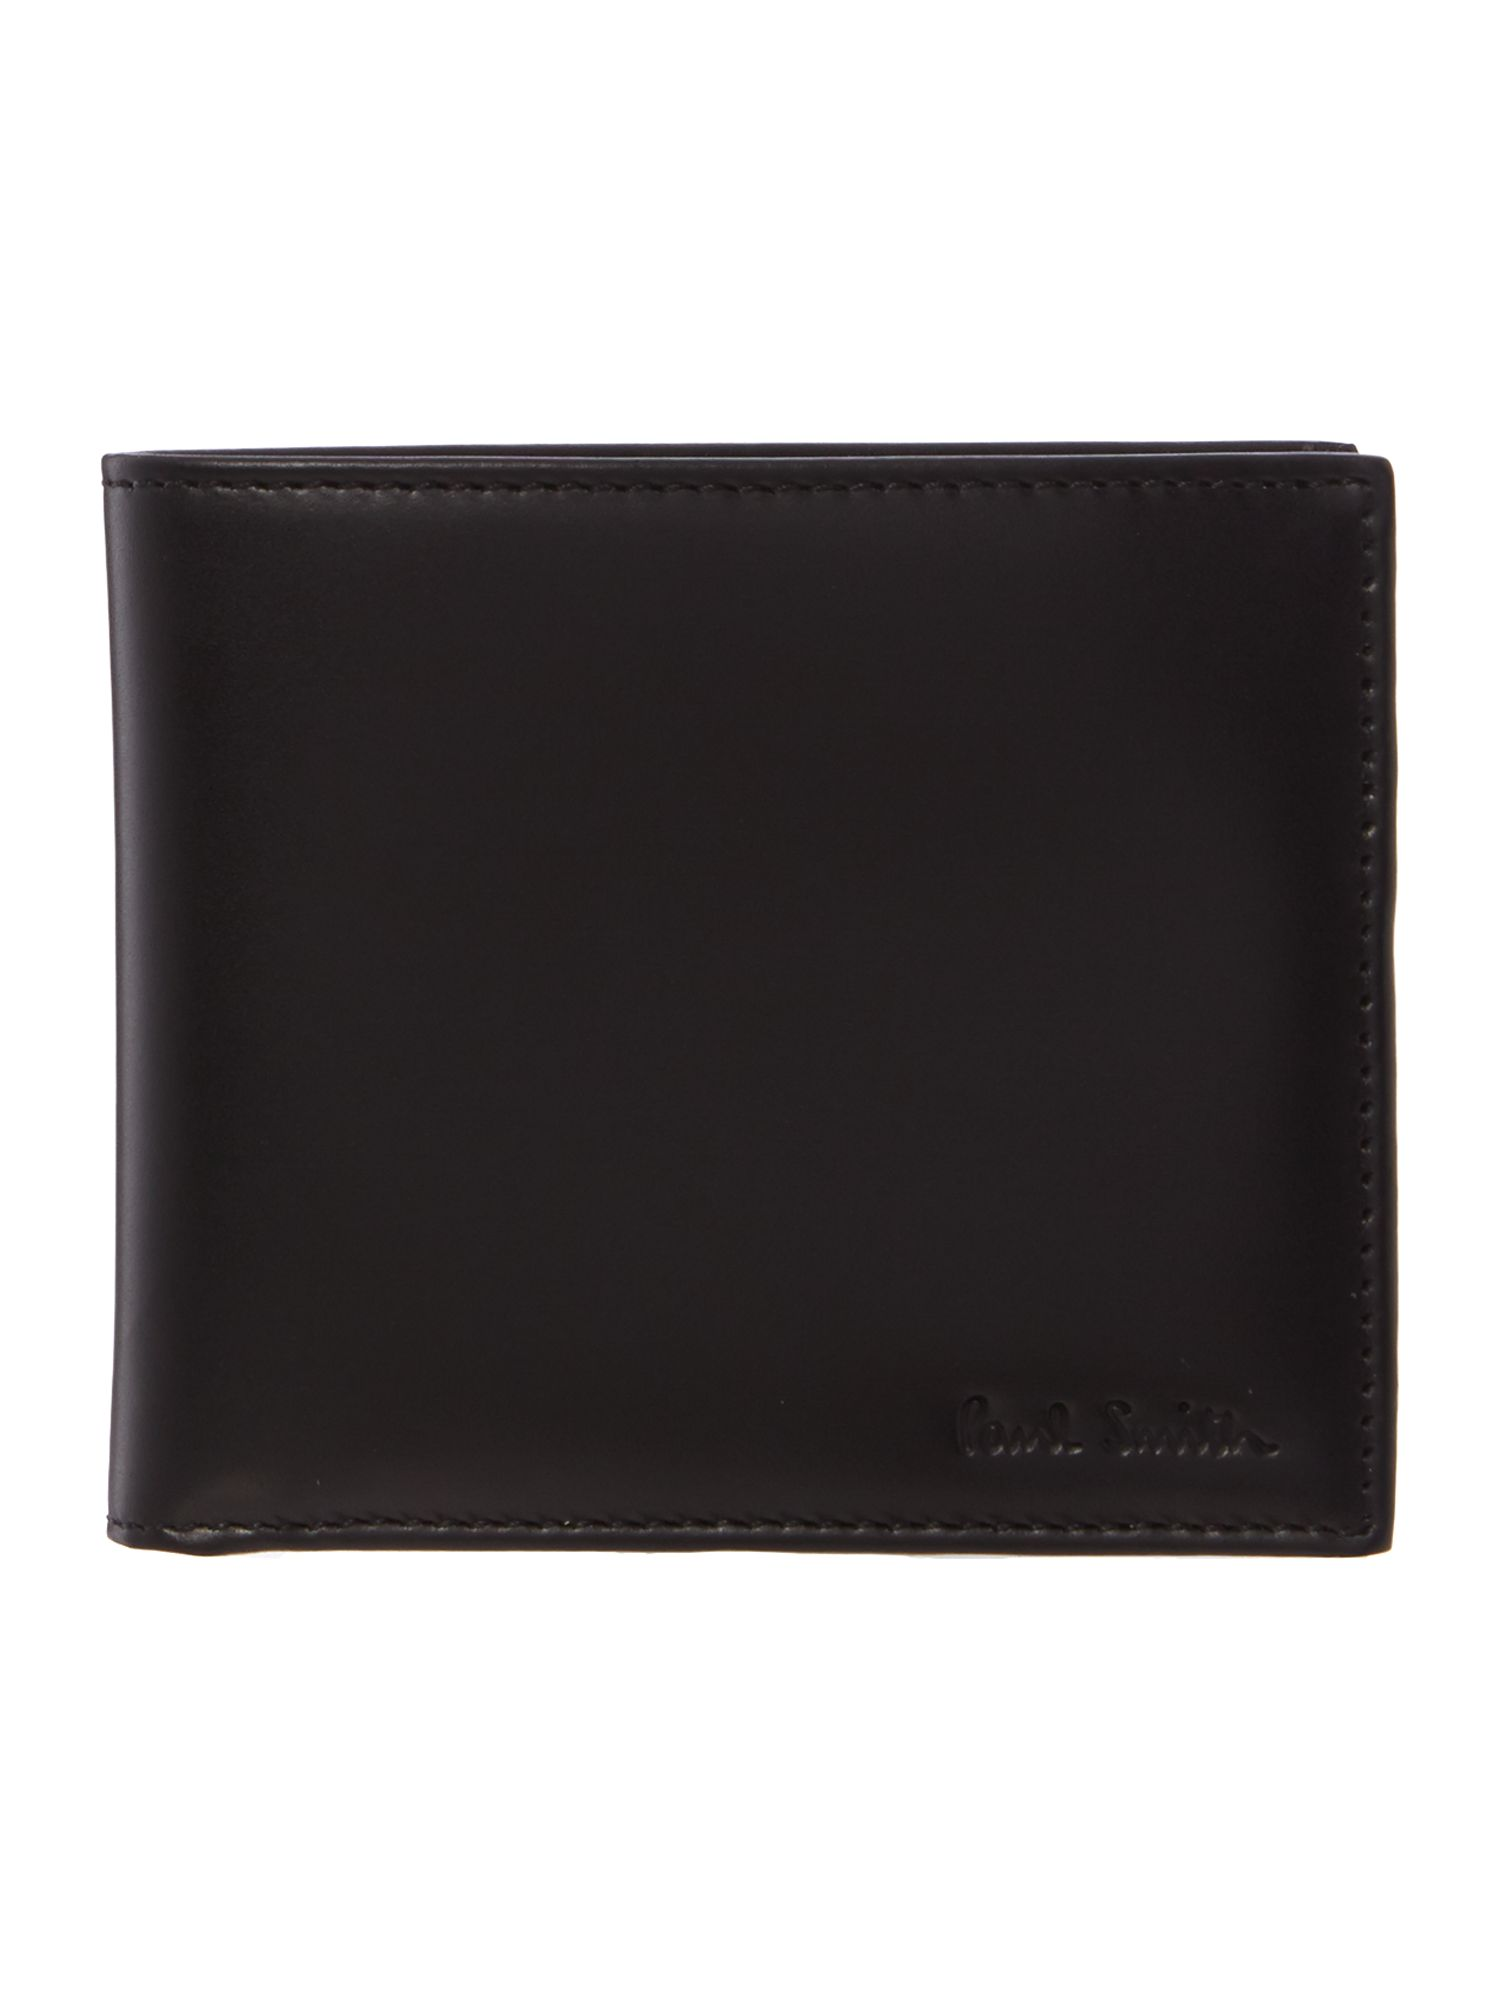 Internal multistripe billfold coin wallet